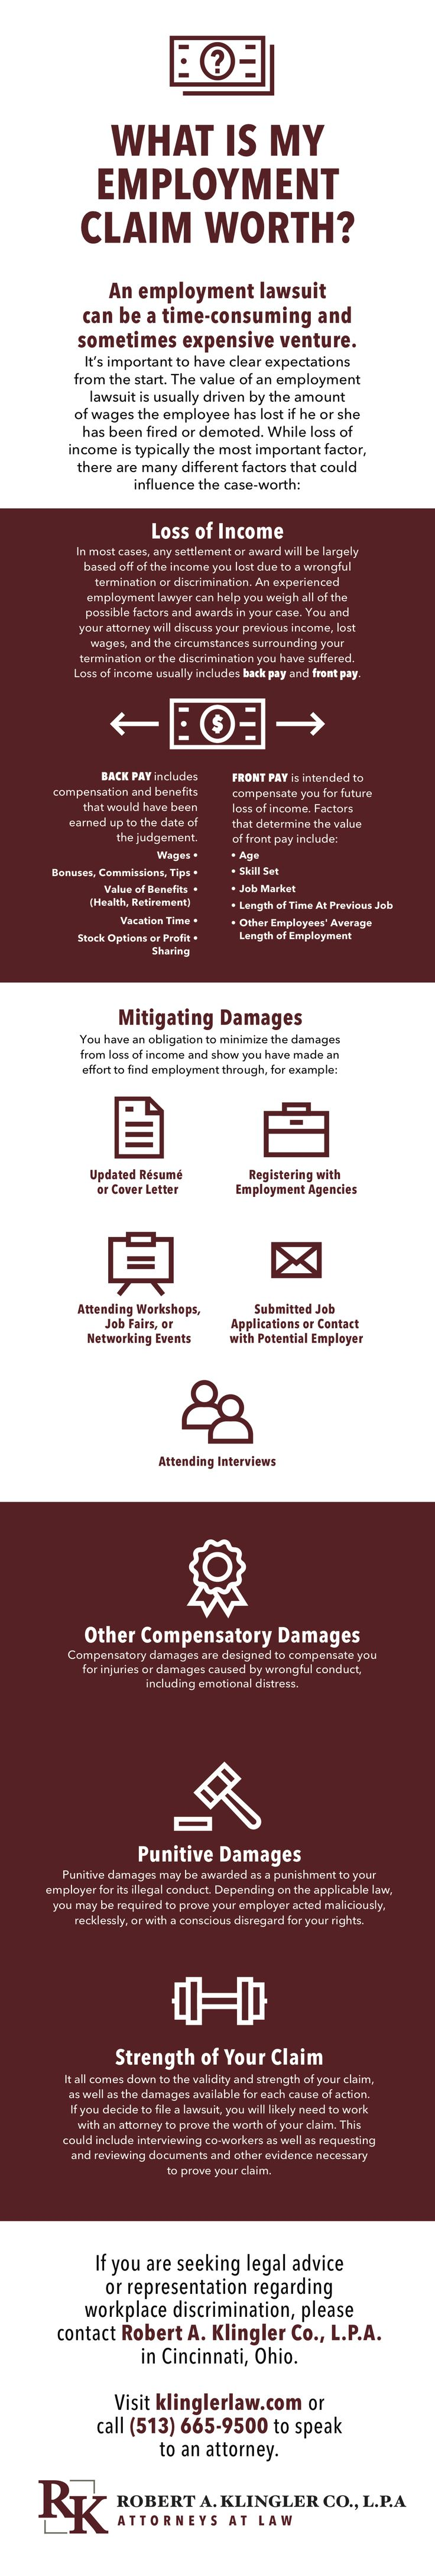 What is my employment claim worth Infographic